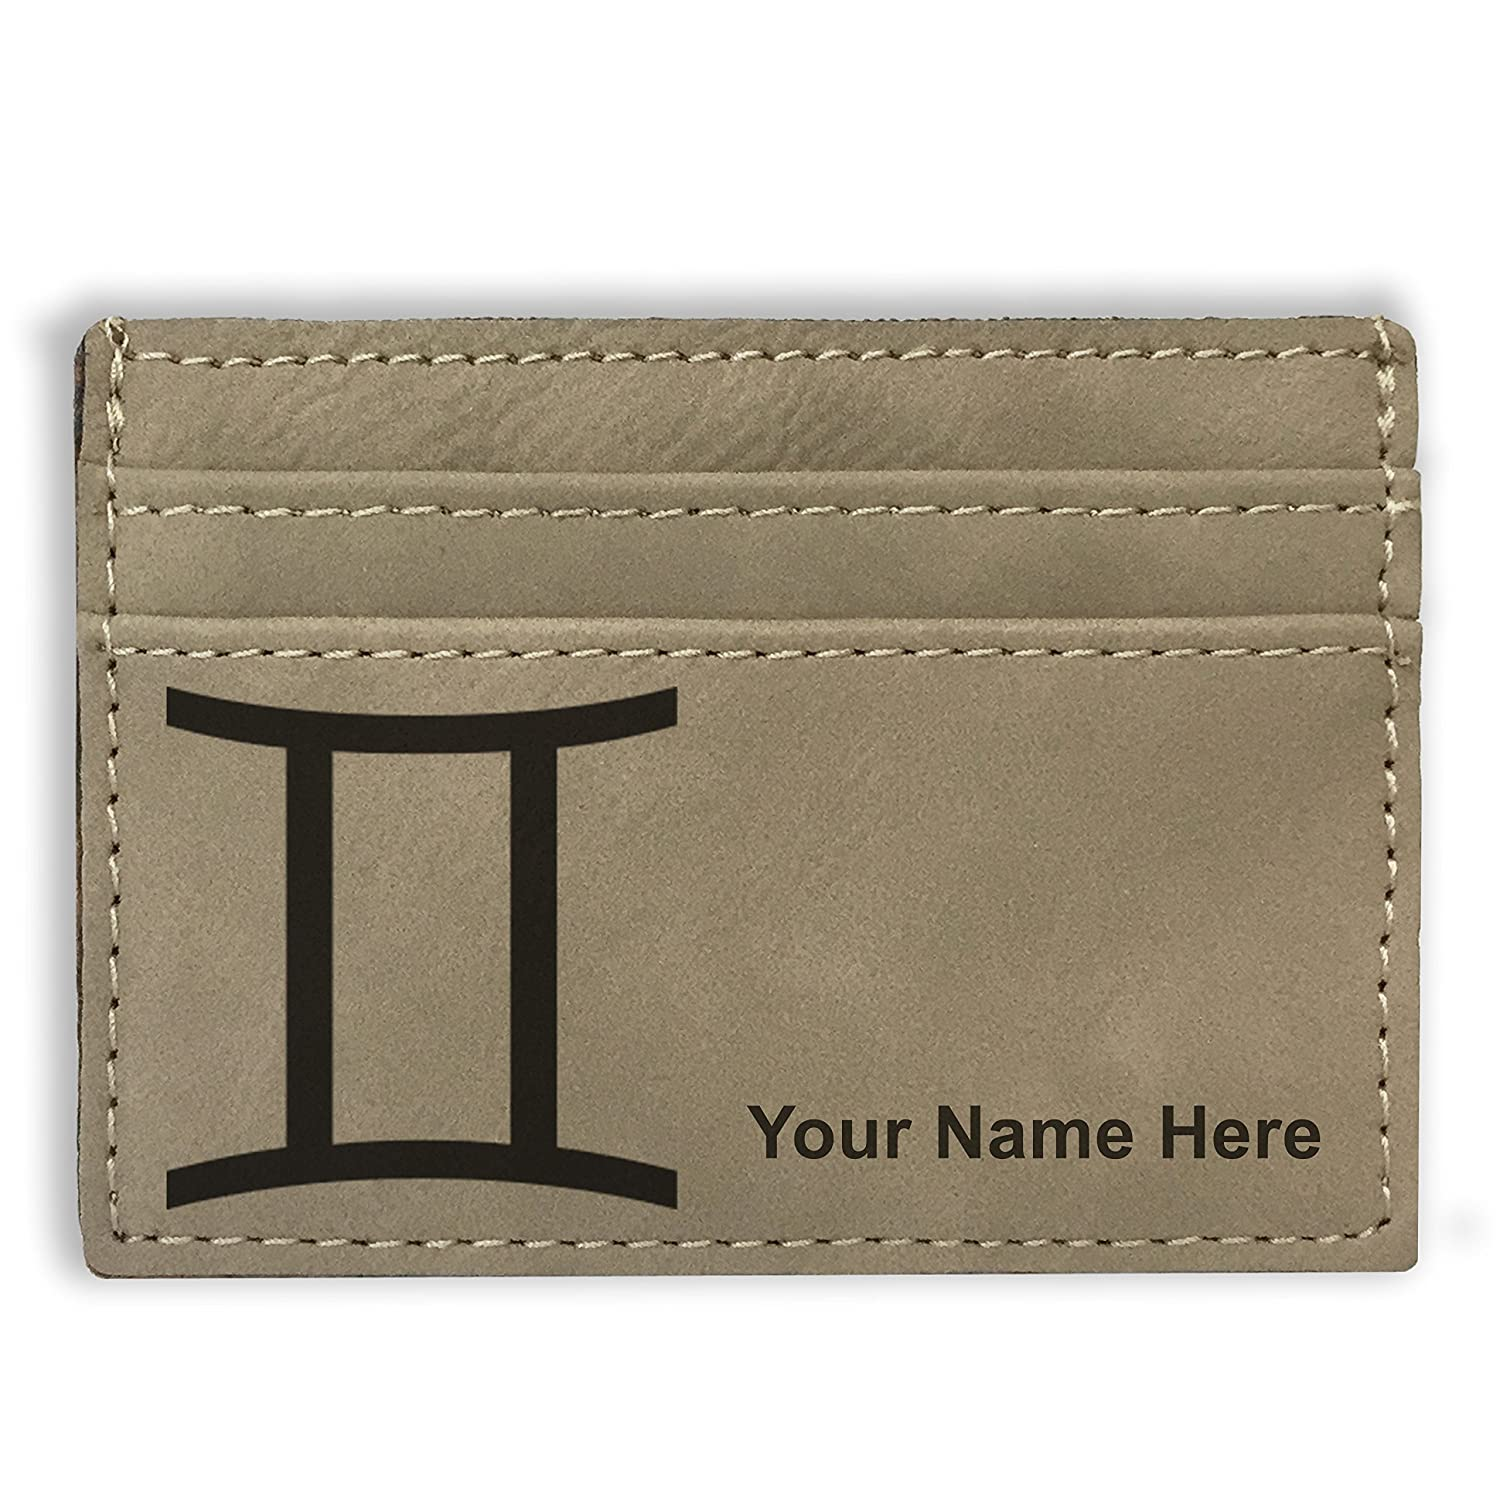 Personalized Engraving Included Zodiac Sign Gemini Money Clip Wallet